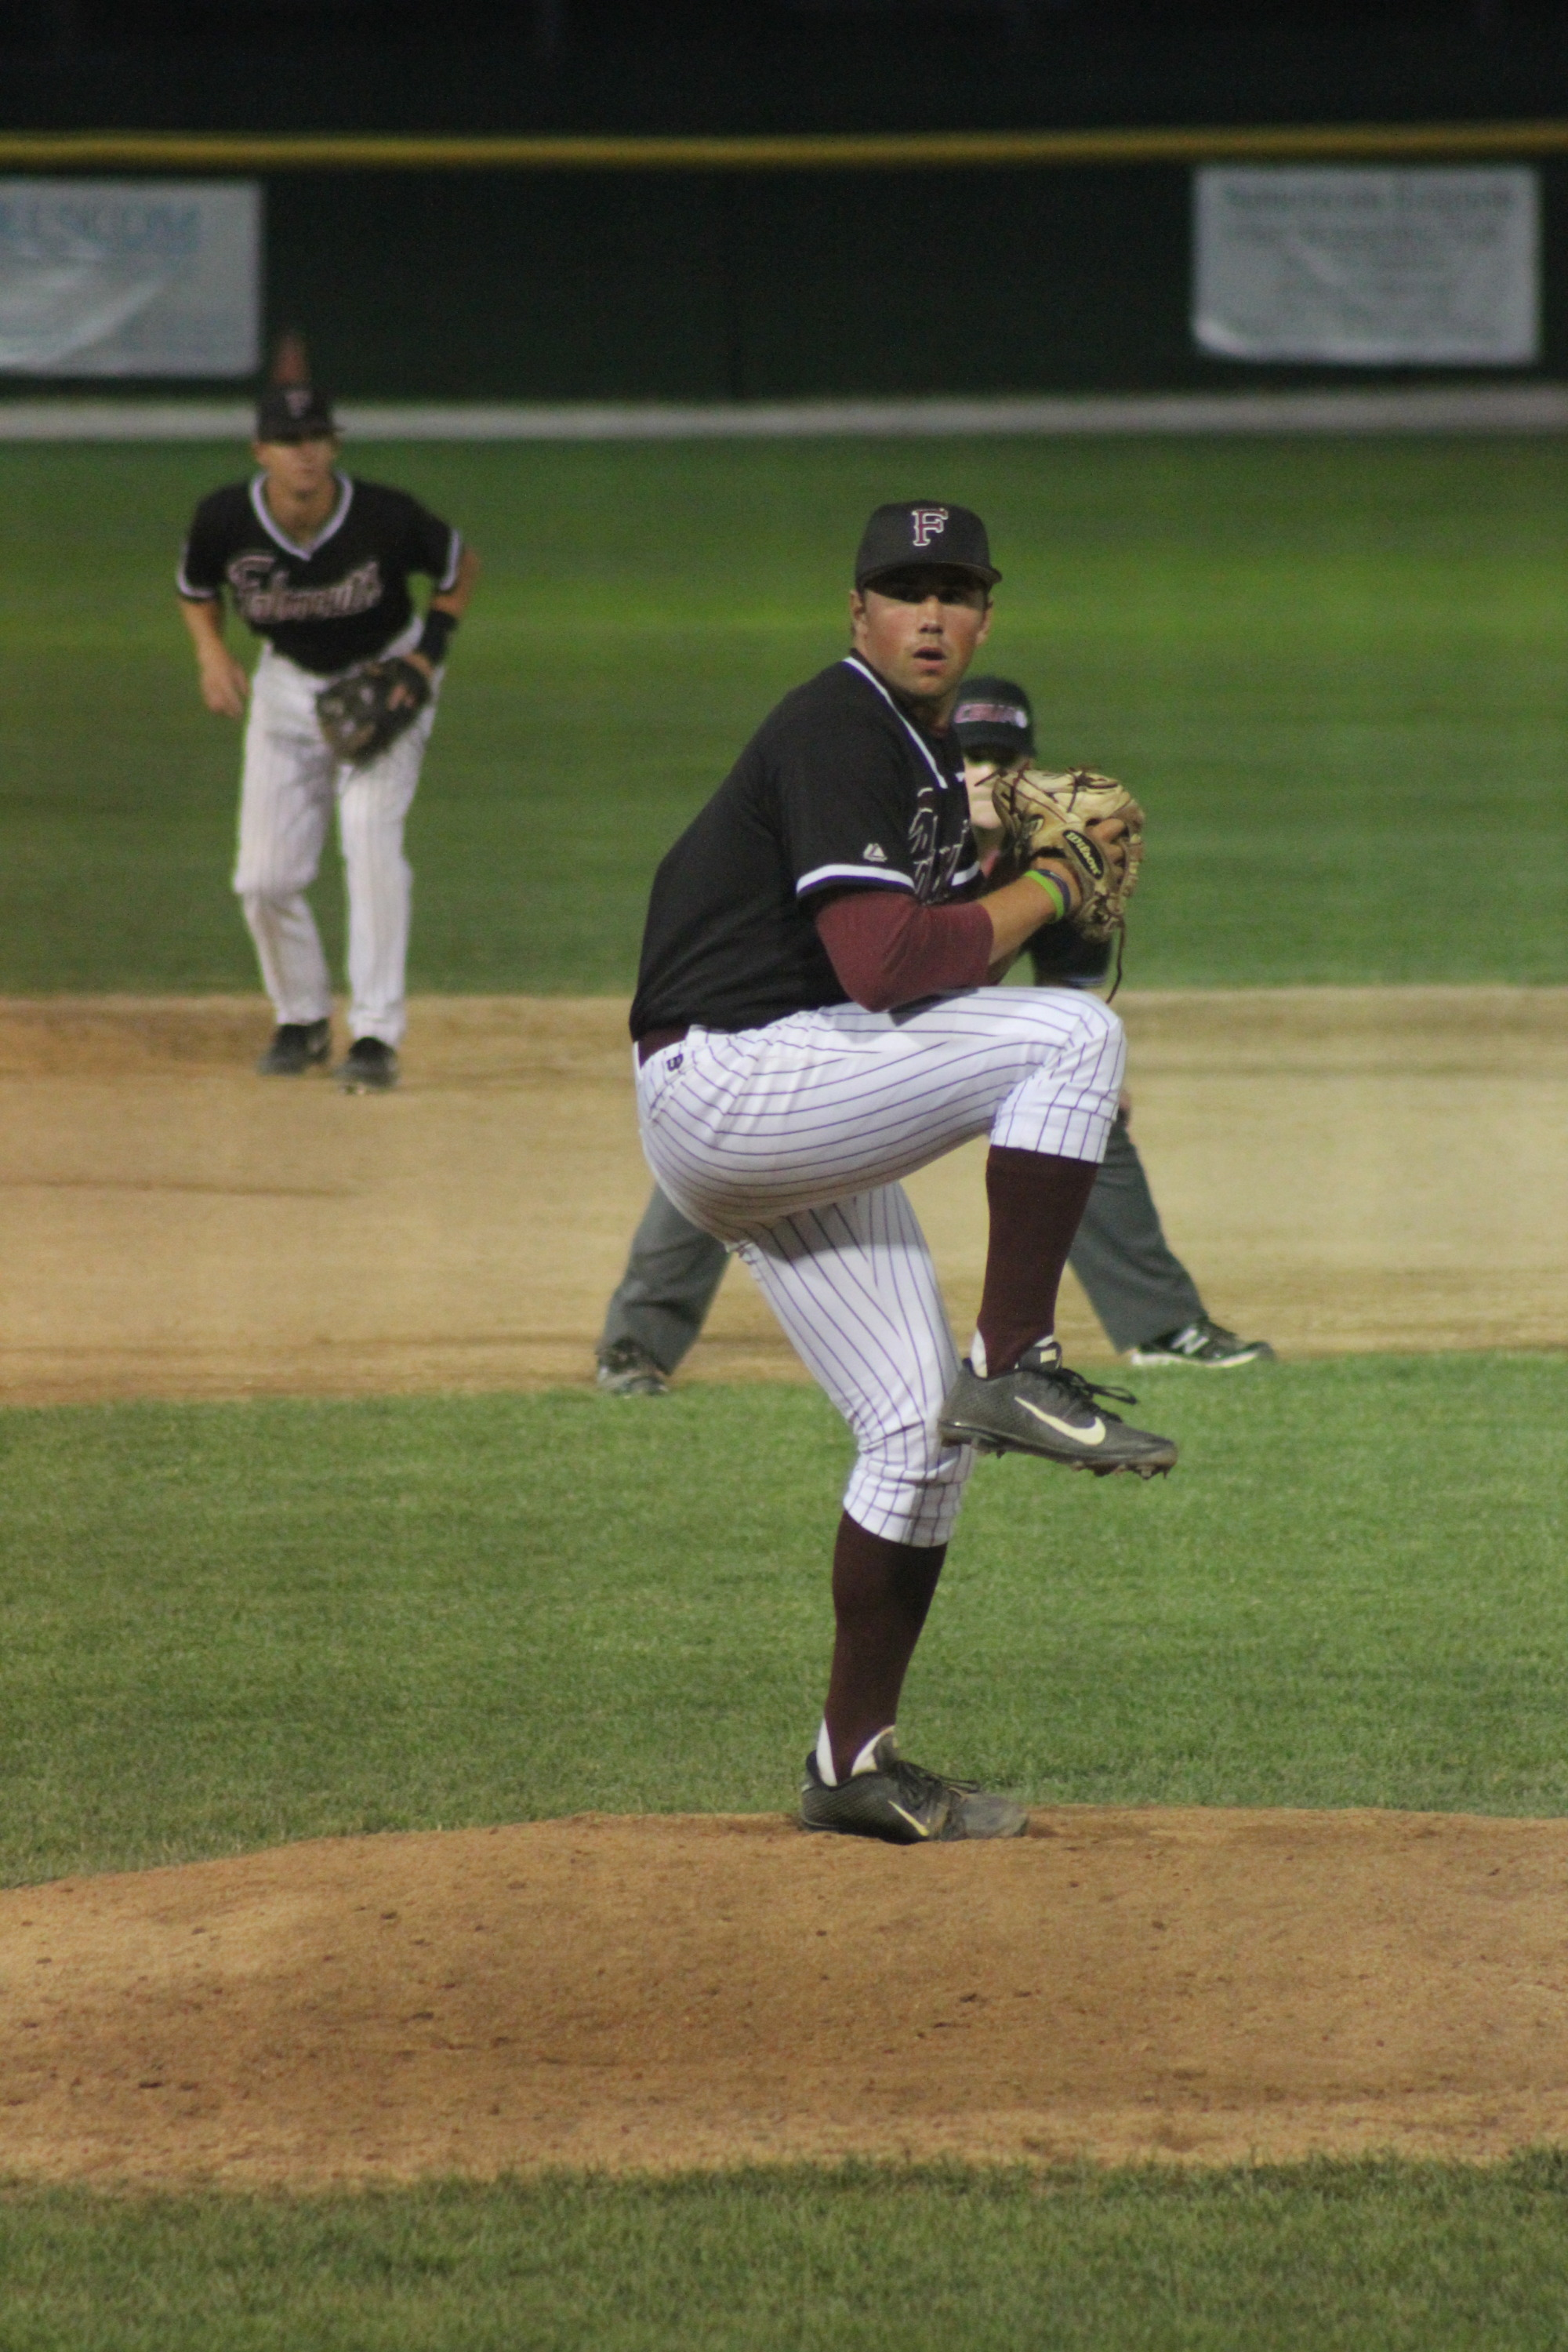 Matt Hollenbeck is pitching for the Falmouth Commodores of the prestigious Cape Cod League.